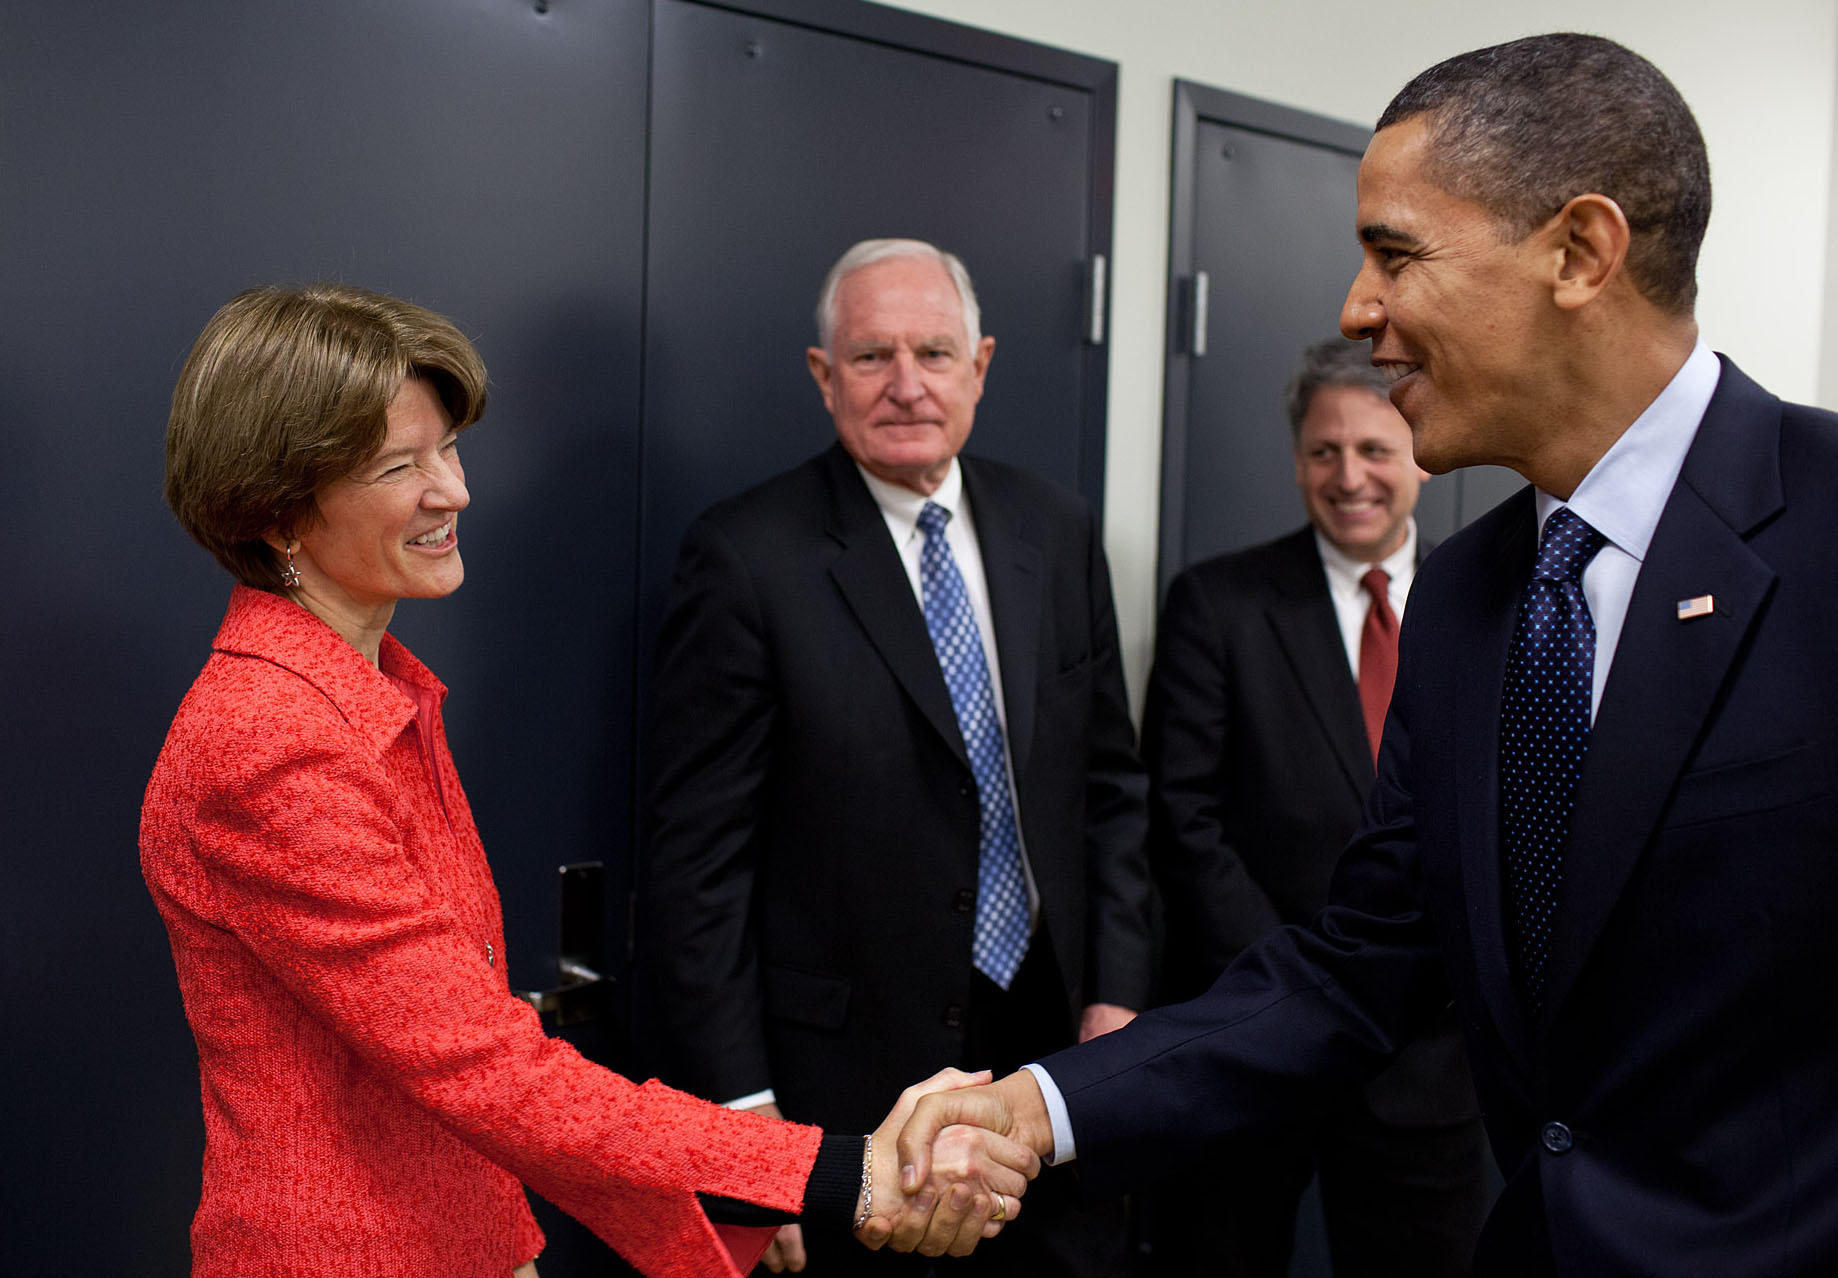 President Obama greets former astronaut Sally Ride at the launch of the